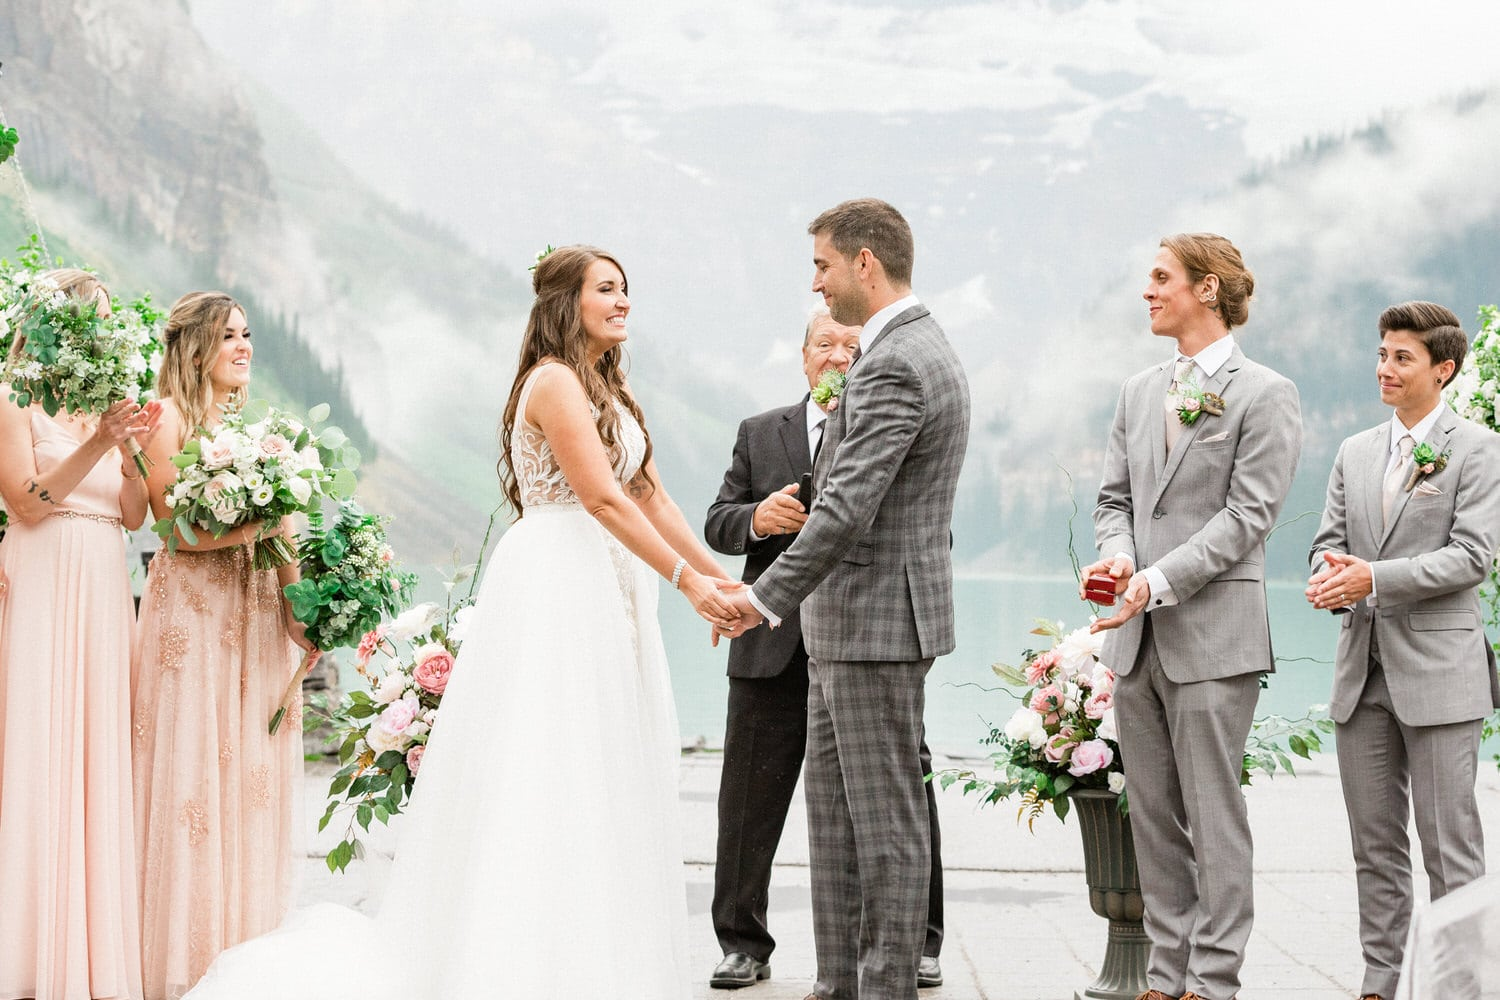 Chateau Lake Louise wedding overlooking the Turquoise Lake